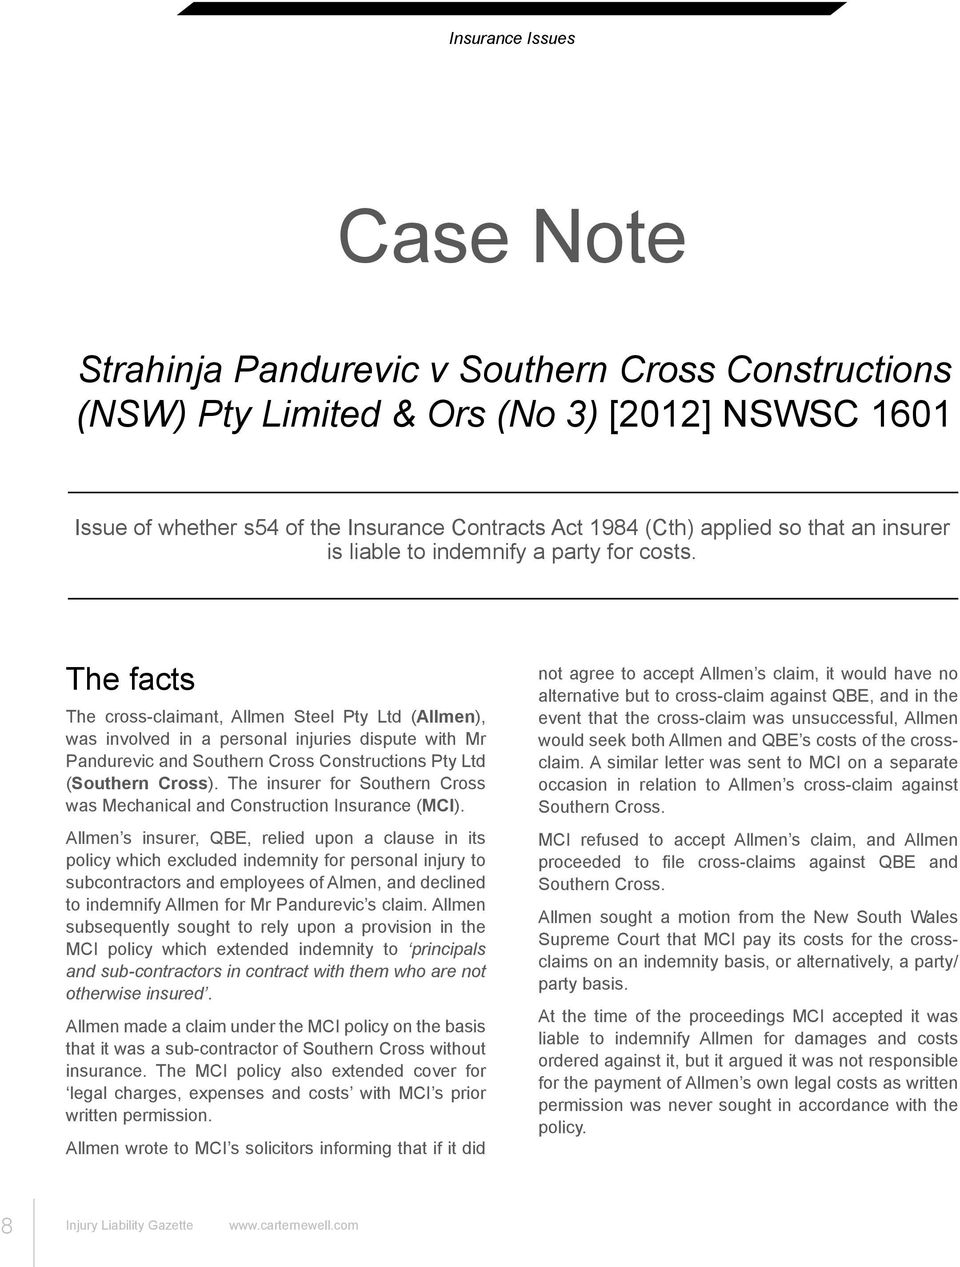 The facts The cross-claimant, Allmen Steel Pty Ltd (Allmen), was involved in a personal injuries dispute with Mr Pandurevic and Southern Cross Constructions Pty Ltd (Southern Cross).